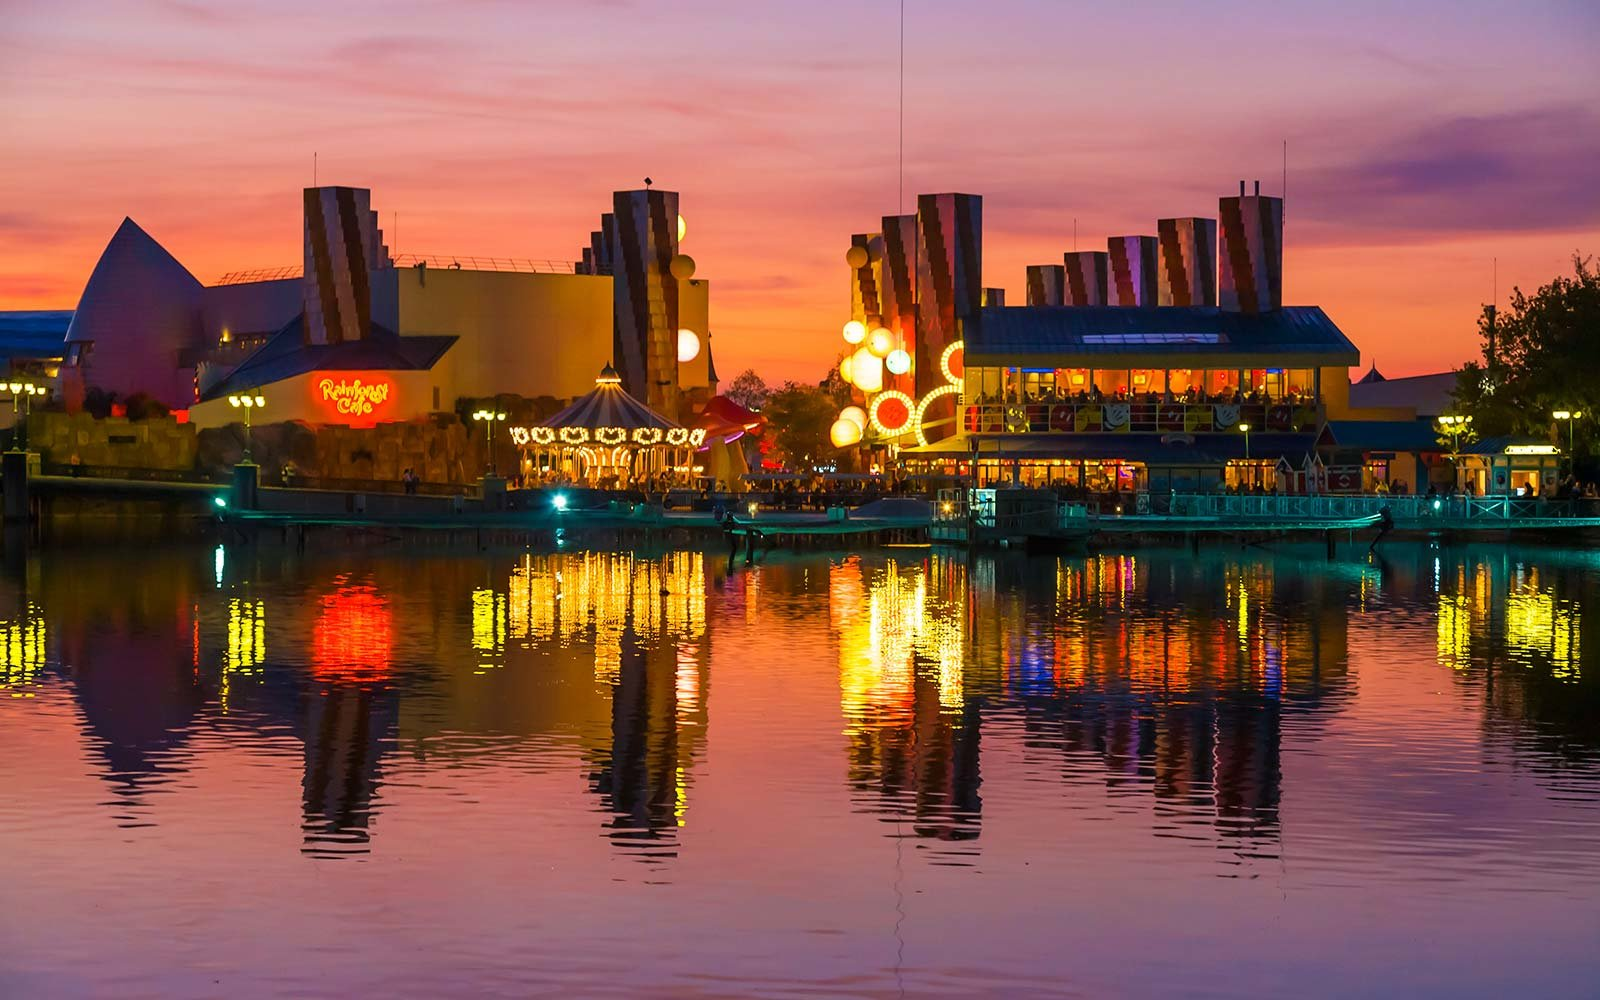 Disney Village Harbor - Paris, France